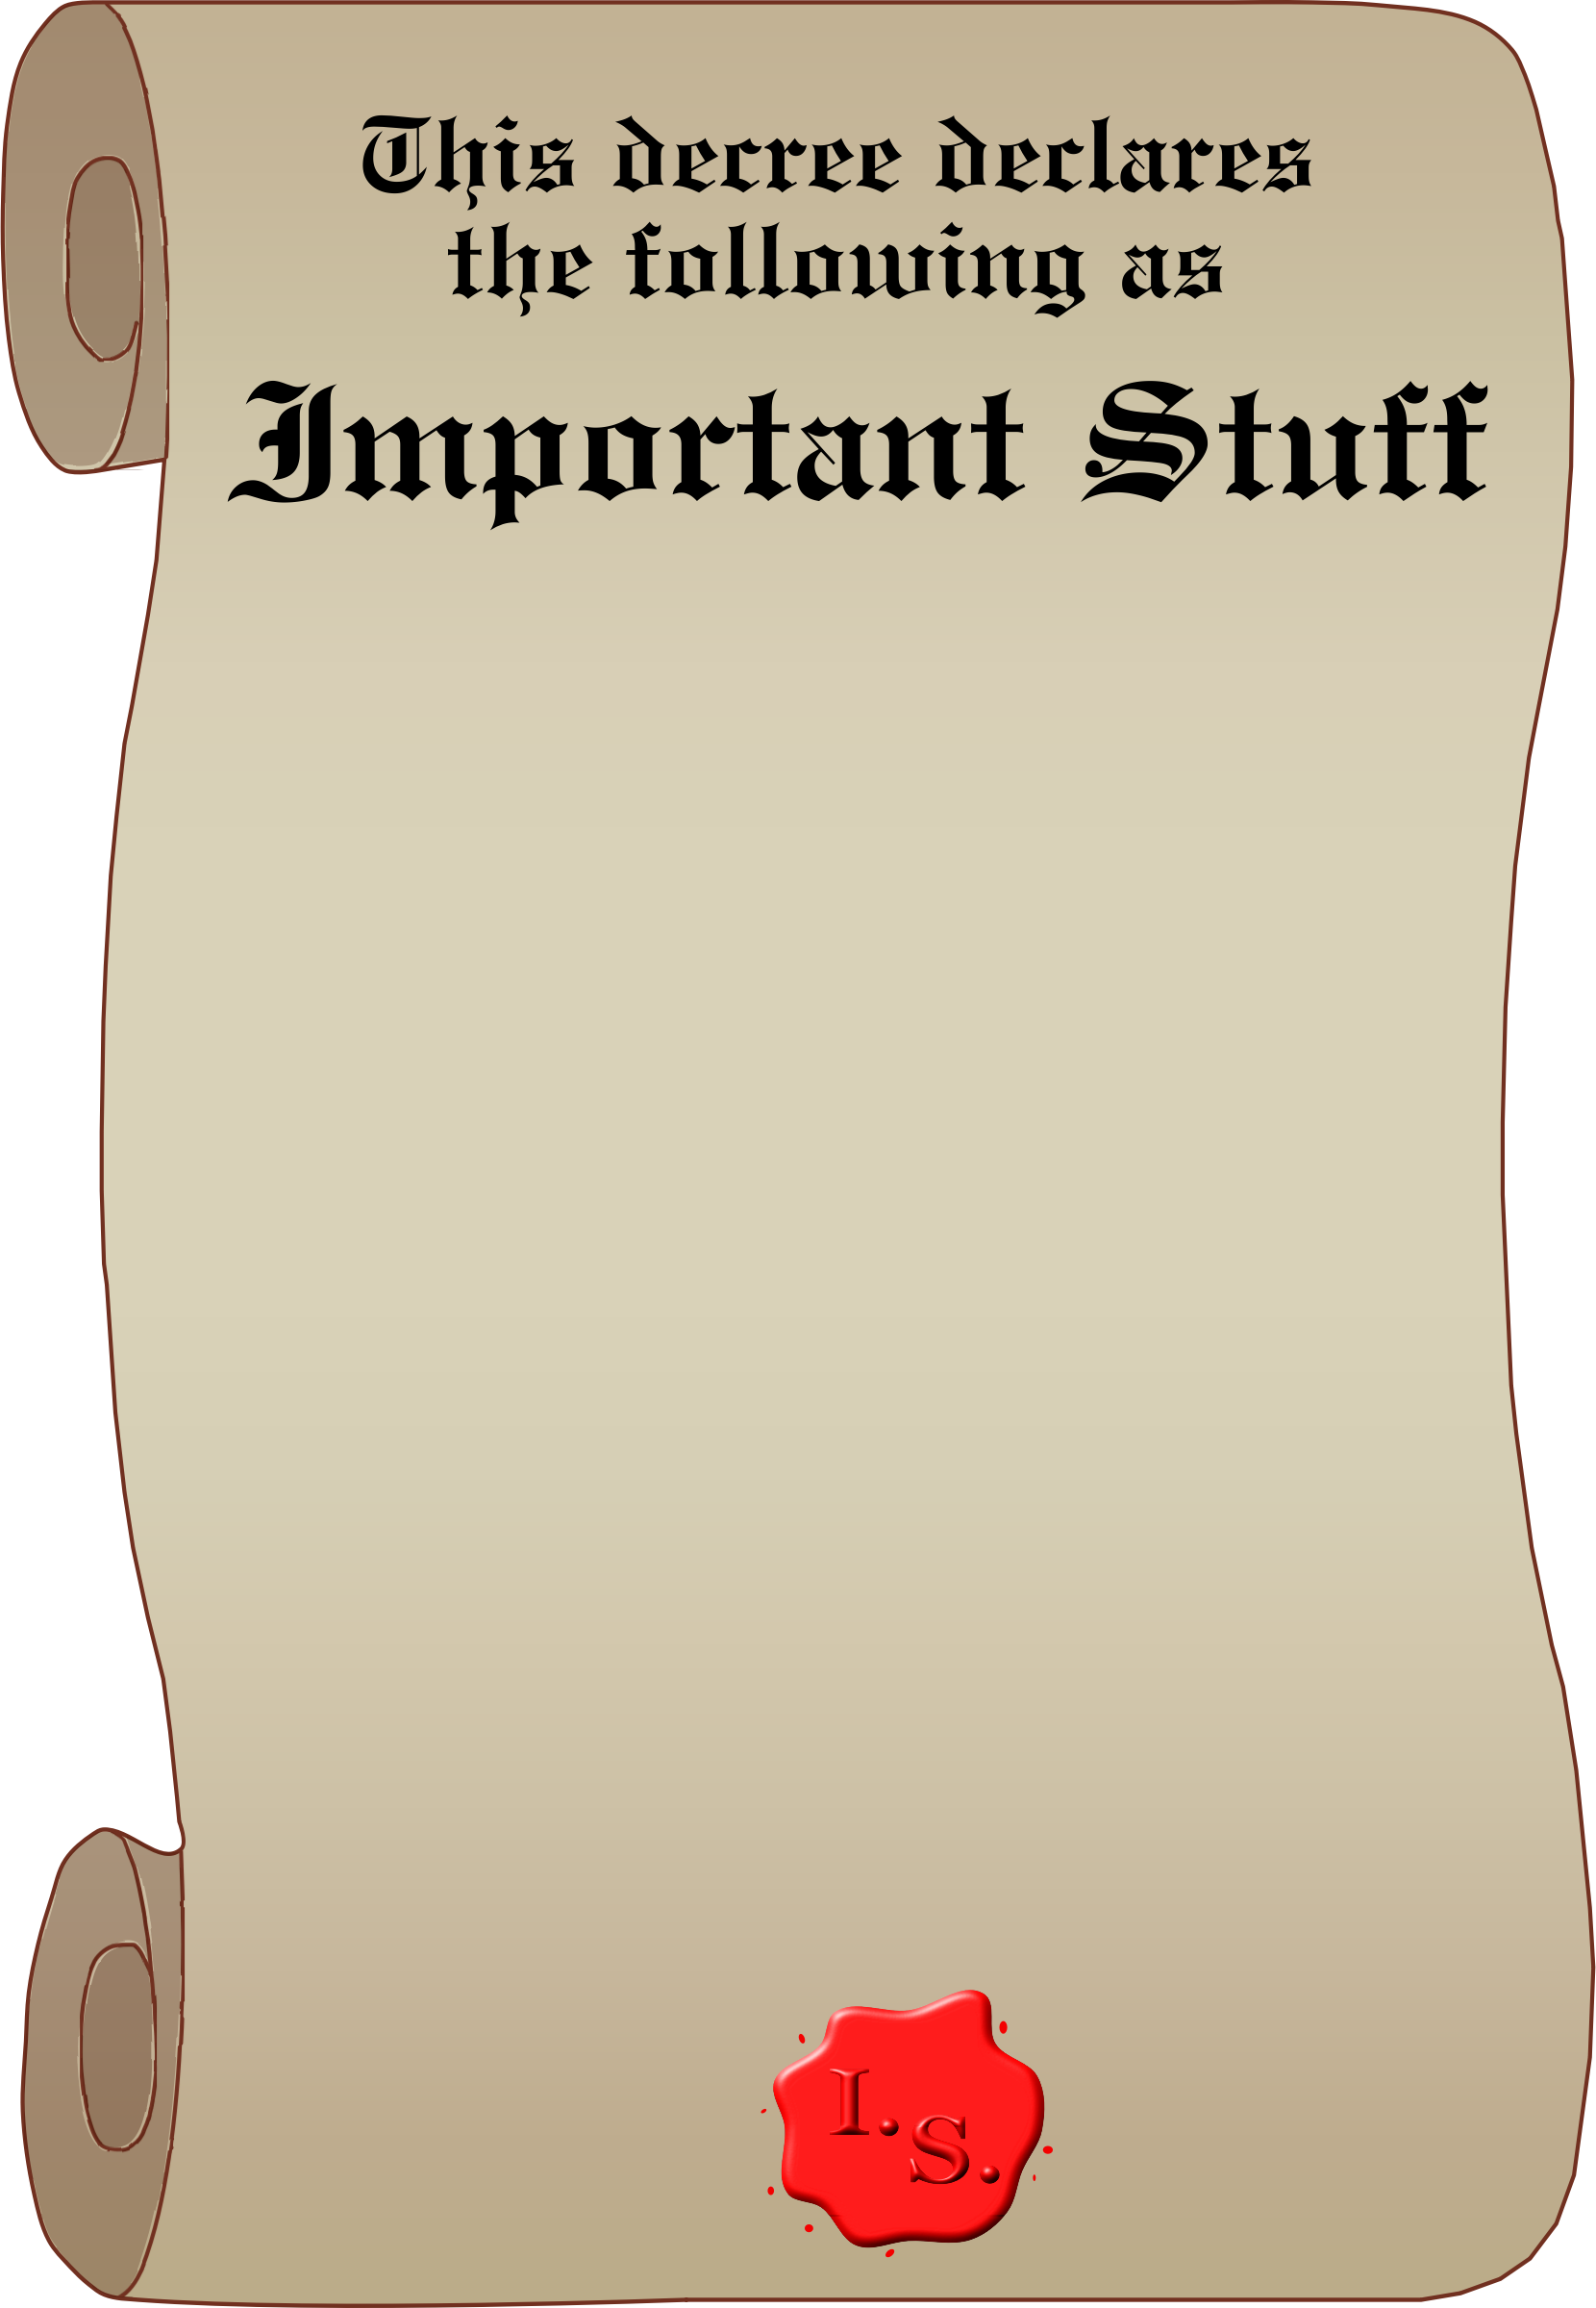 Important Stuff Decree by Arvin61r58